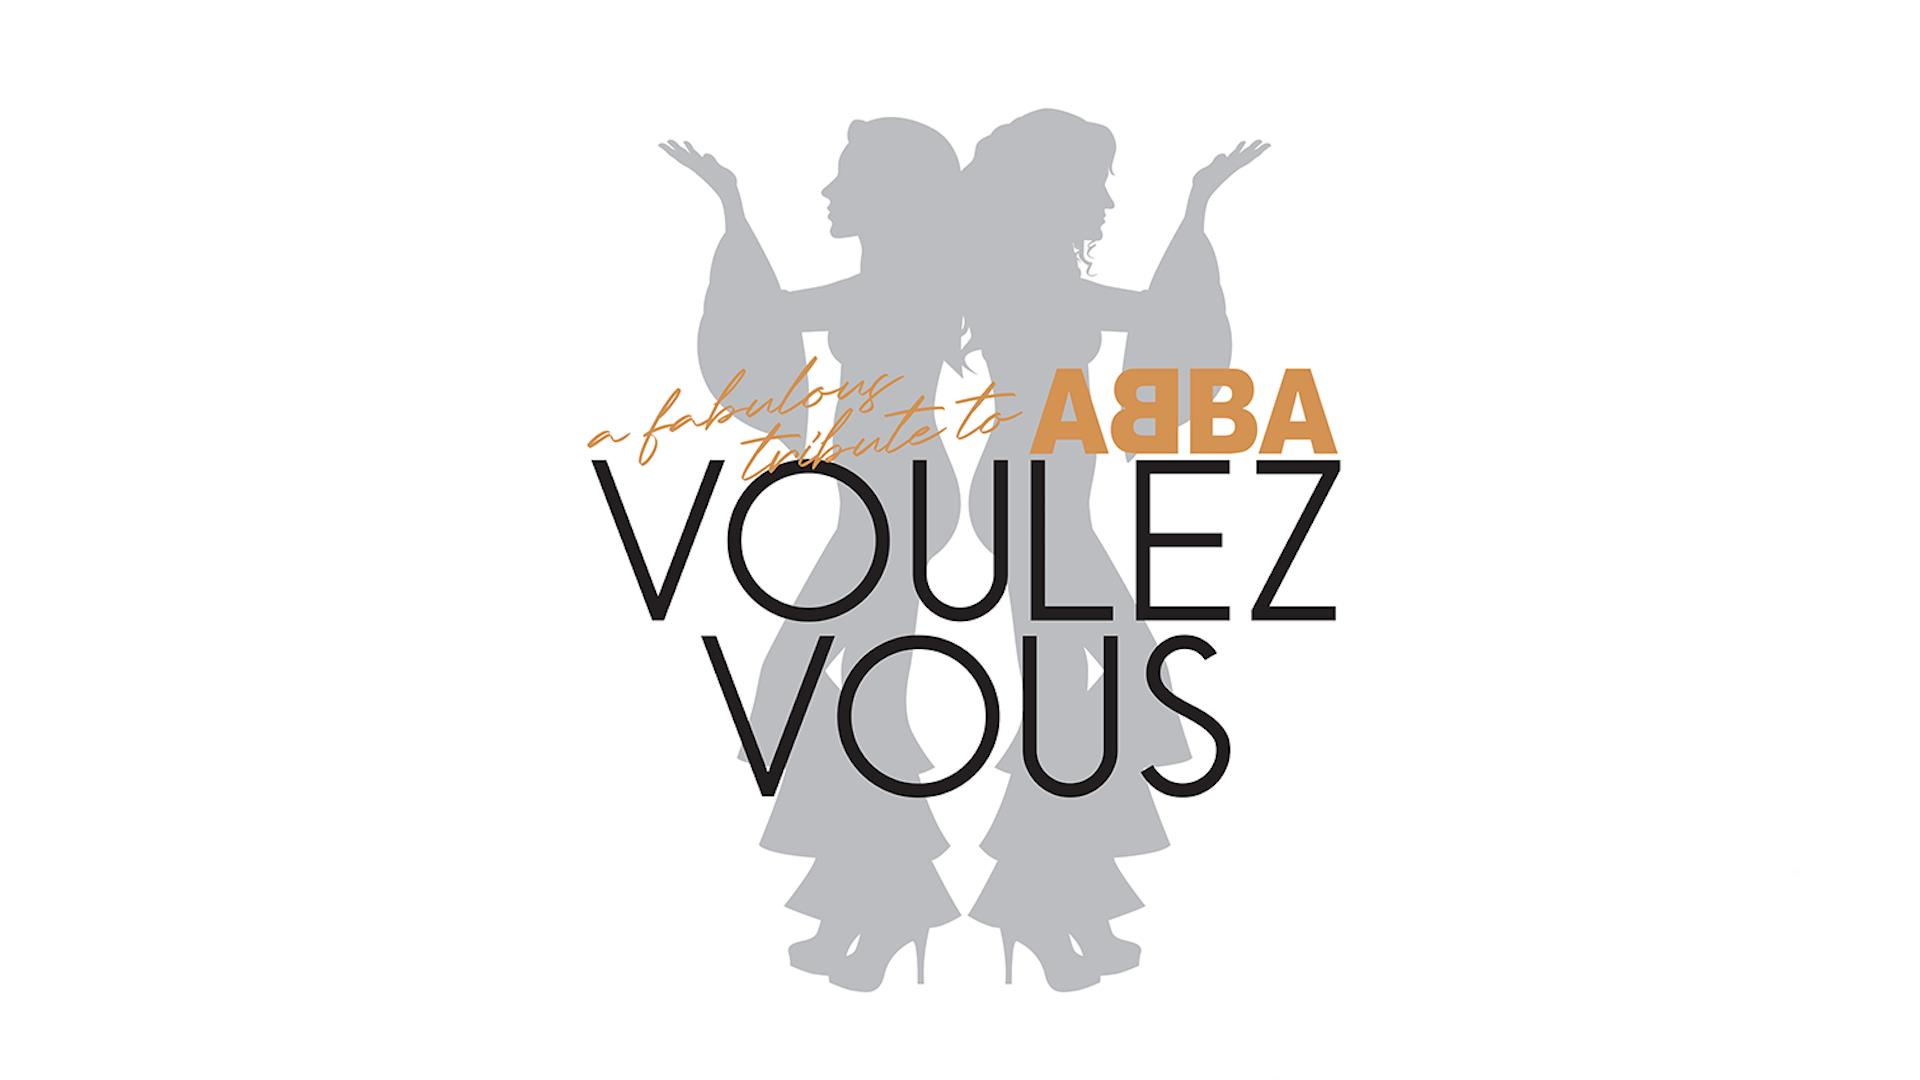 VV – A Fabulous tribute to ABBA